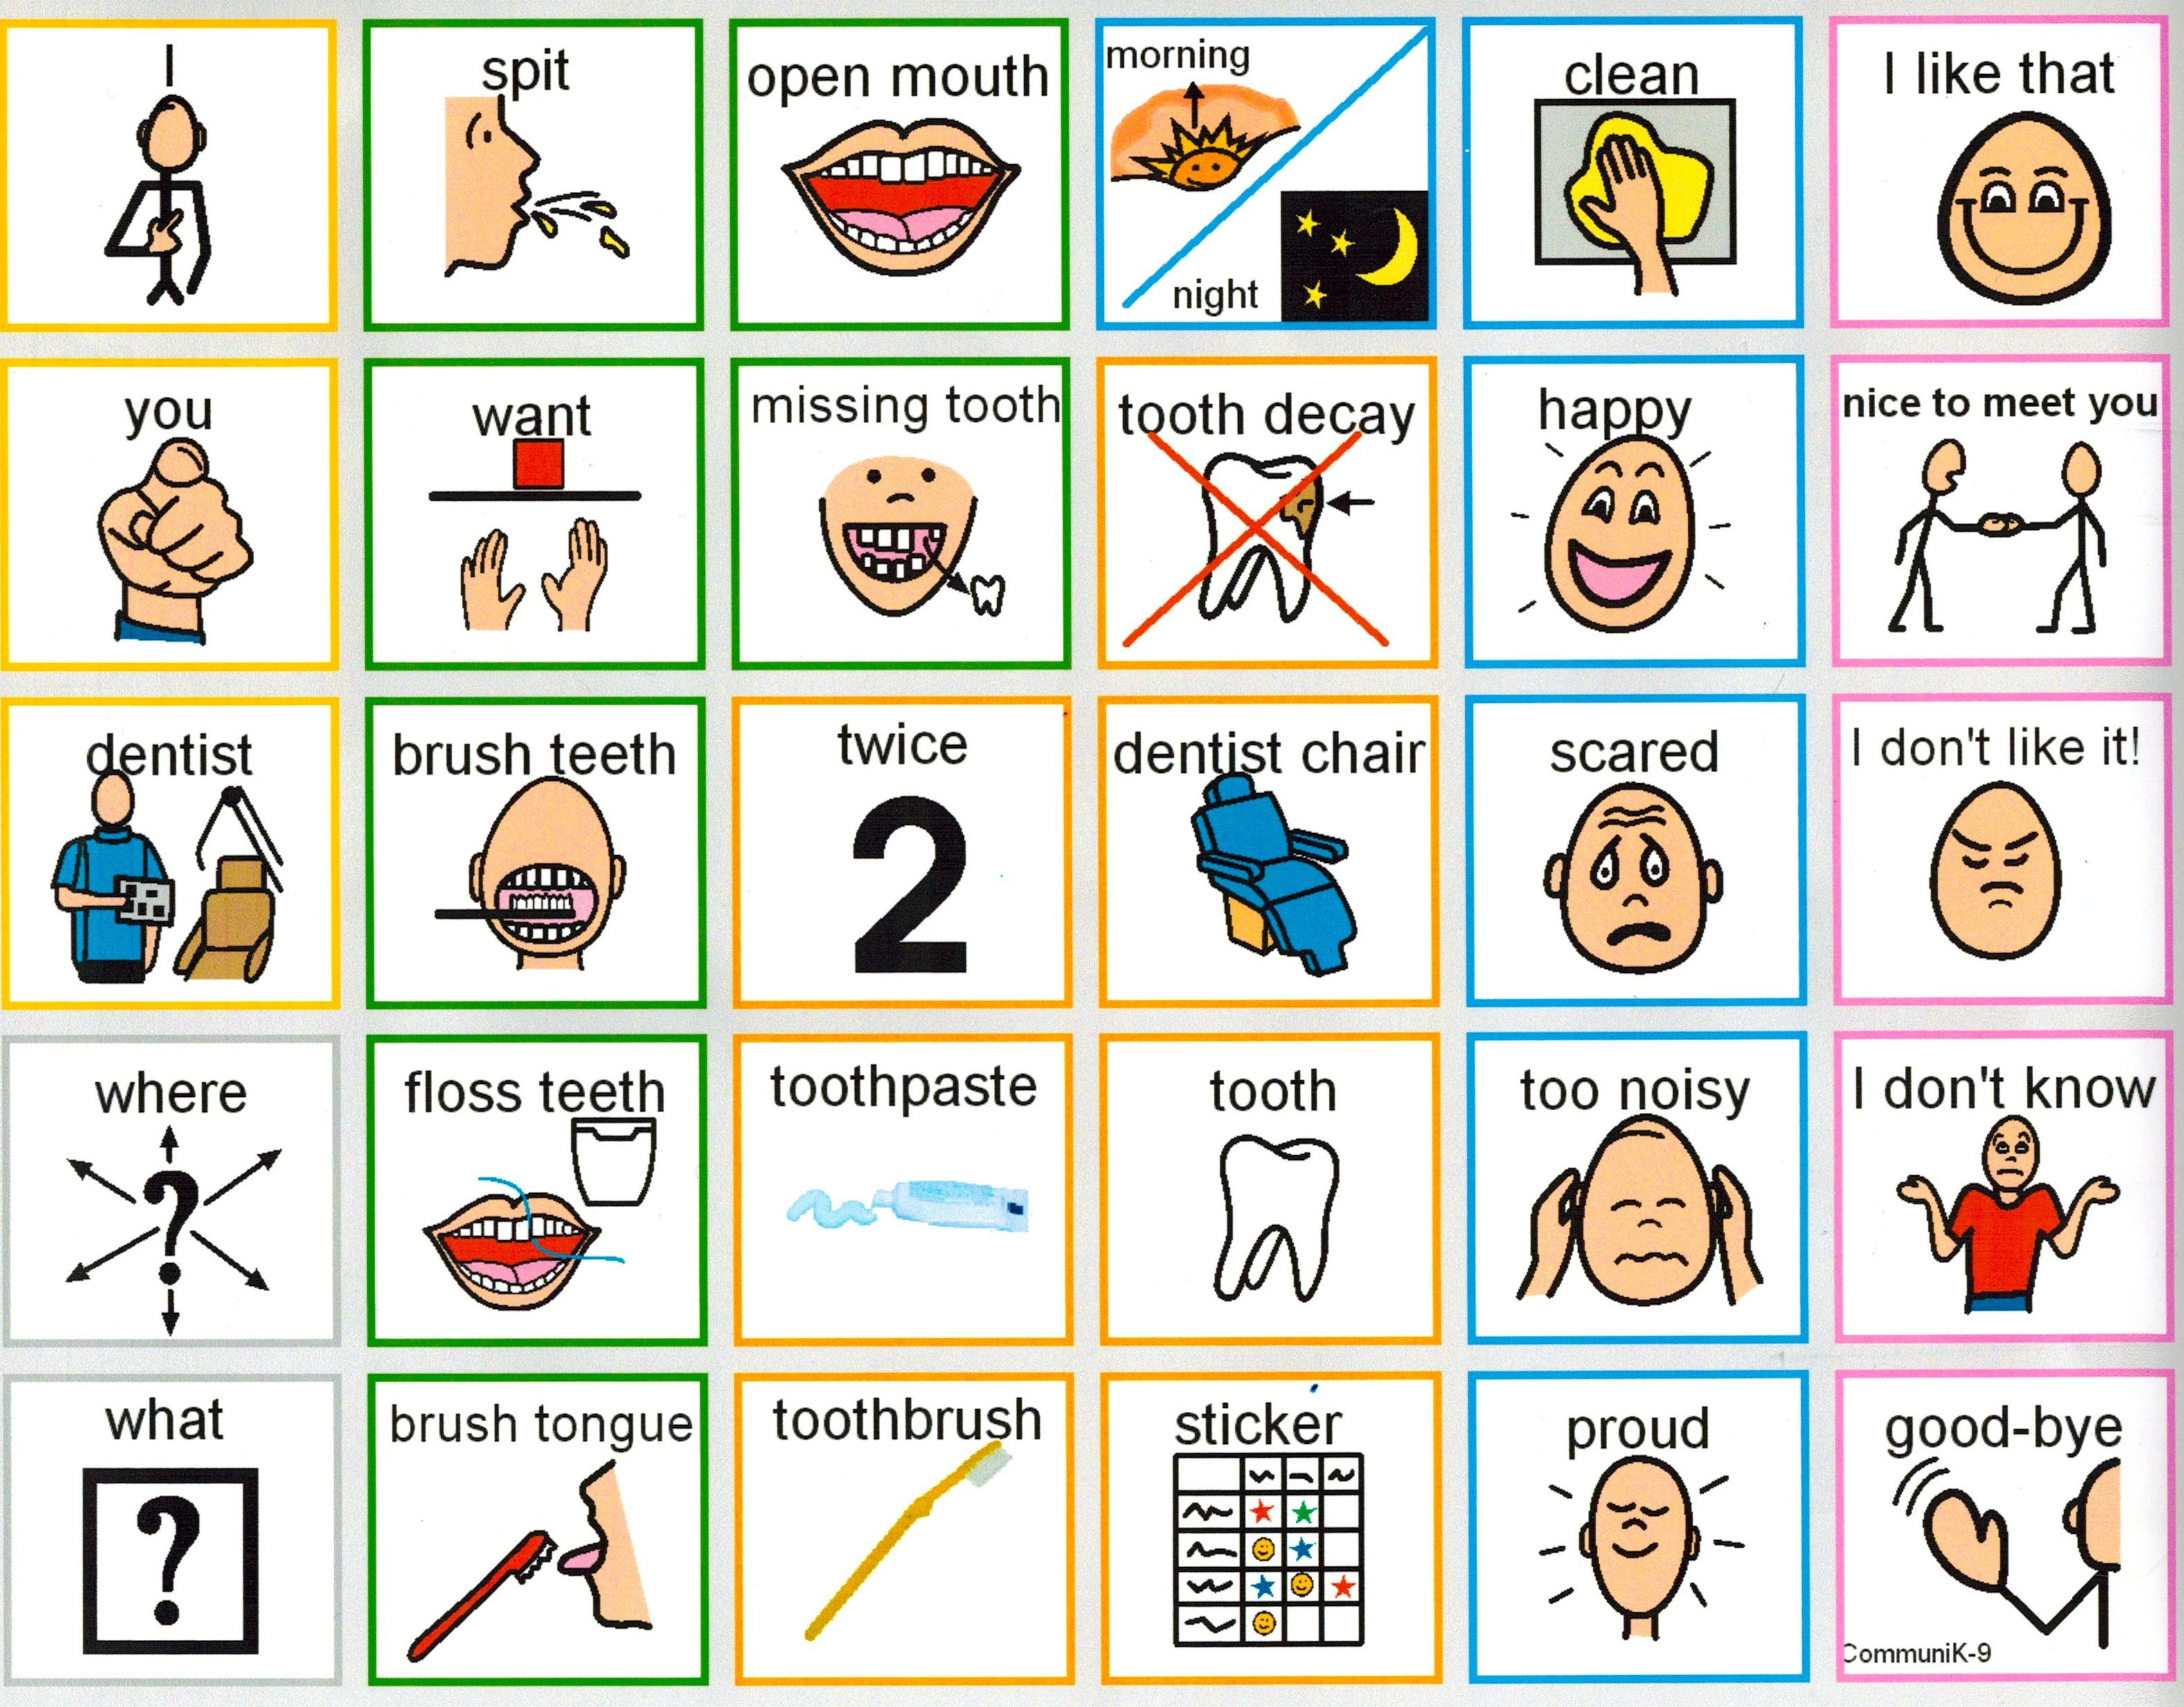 Going To The Dentist Communication Board | Aac- Medical And - Free Printable Communication Boards For Adults